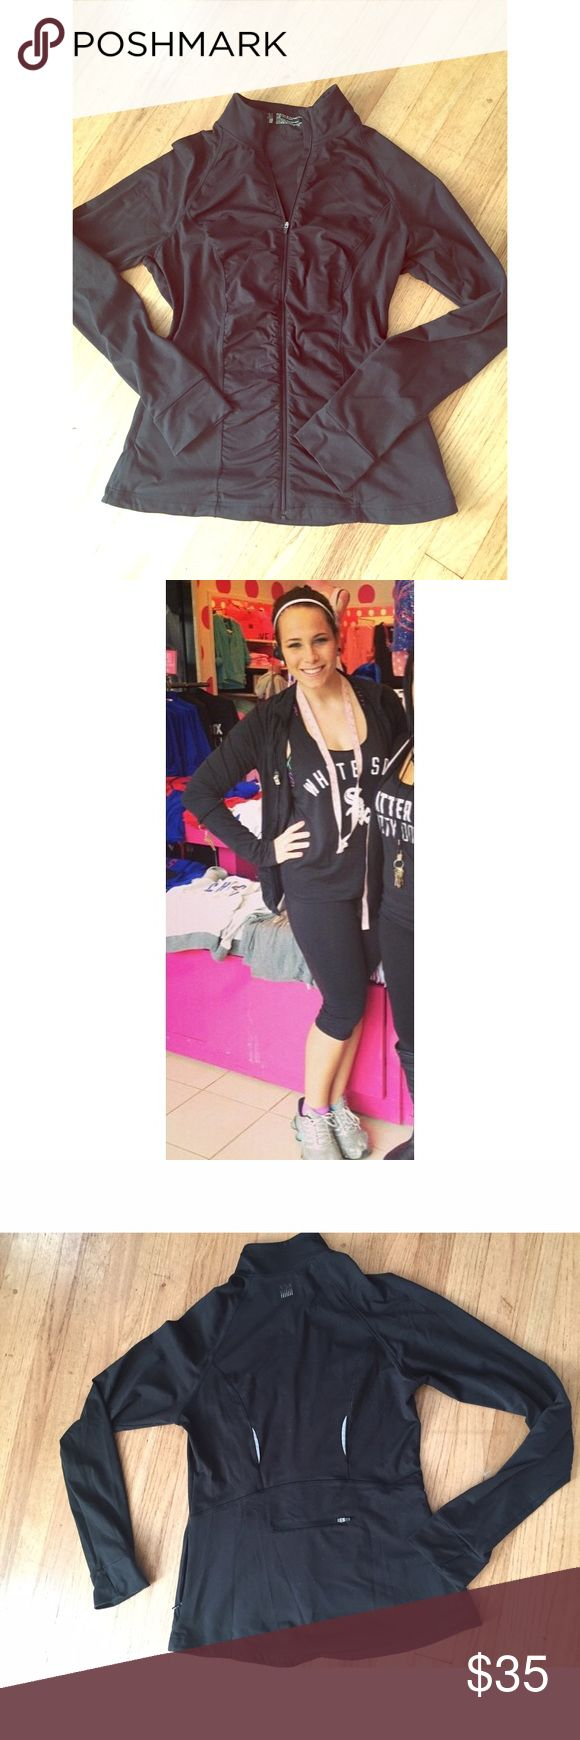 Victoria's Secret VSX Sport Jacket Classic black Victoria's Secret VSX sport jacket! Super functional bodywick material, perfect for sweat resistant training and keeping cool OR warm! Super flattering ruching down the center of the jacket and pockets with zippers, as well as a zipper on the back. Reflective detailing on the back... AND thumb holes! Who doesn't love thumb holes?! Has been previously loved, but still fully functional and in good condition! Perfect for every day use, whether or…